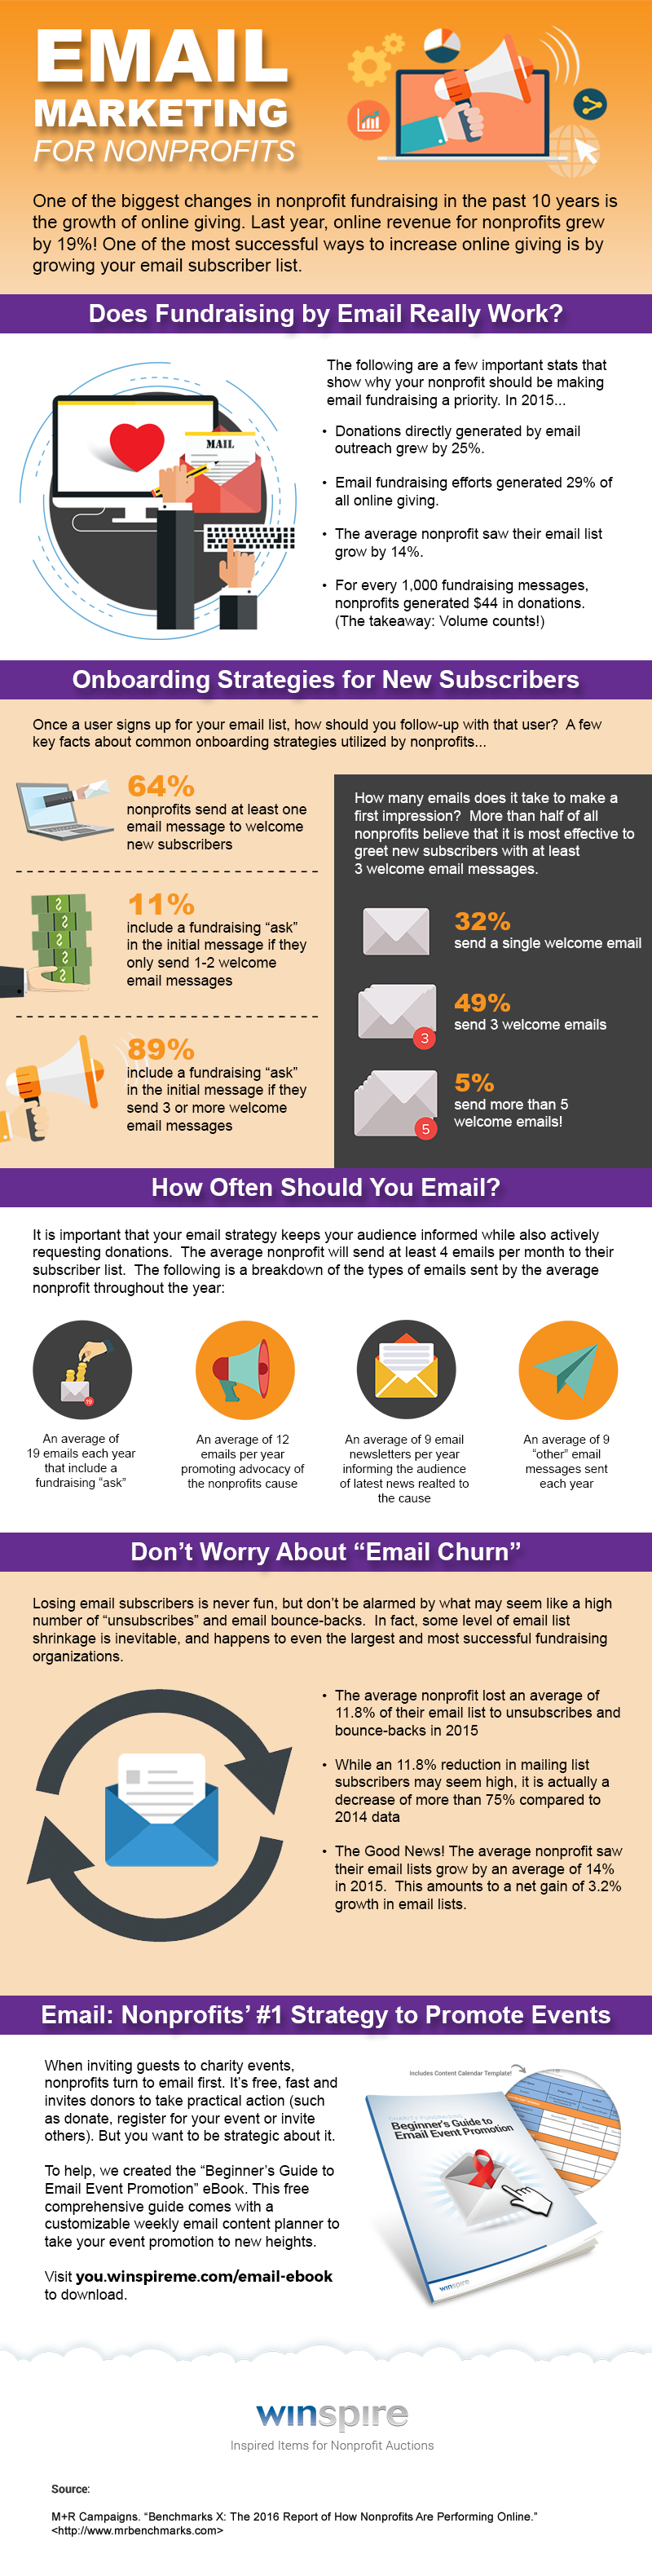 Nonprofit Email Marketing - What's Working in 2017 (infographic)